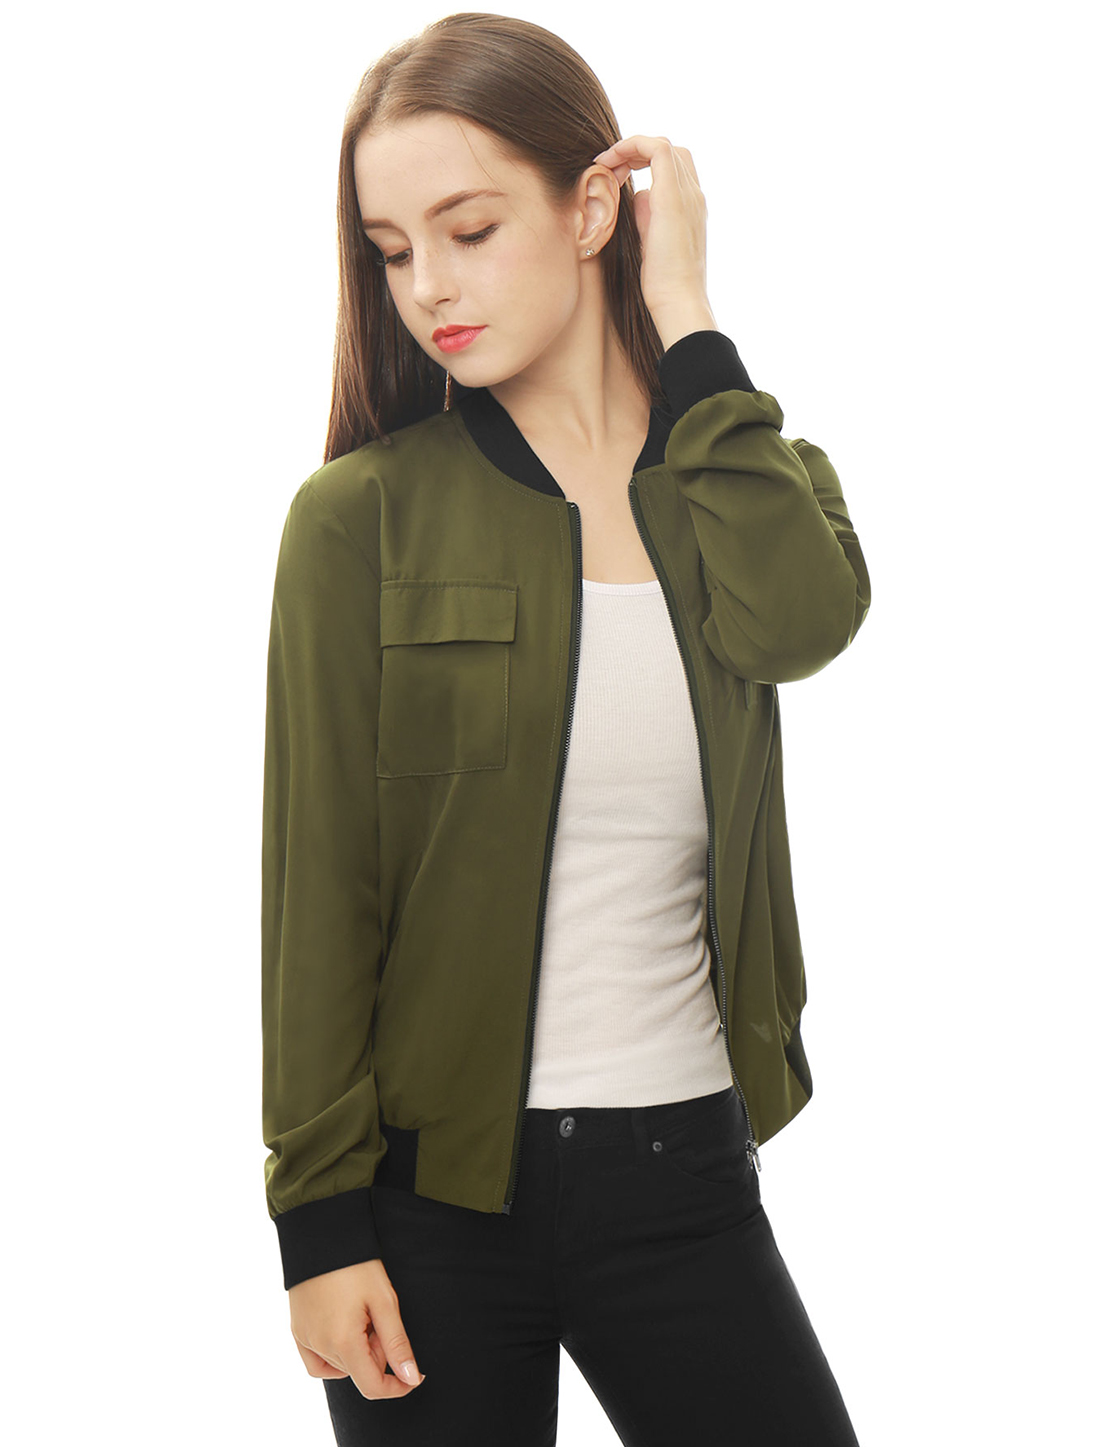 Women Multi-Pocket Zip Fastening Front Bomber Jacket Green S